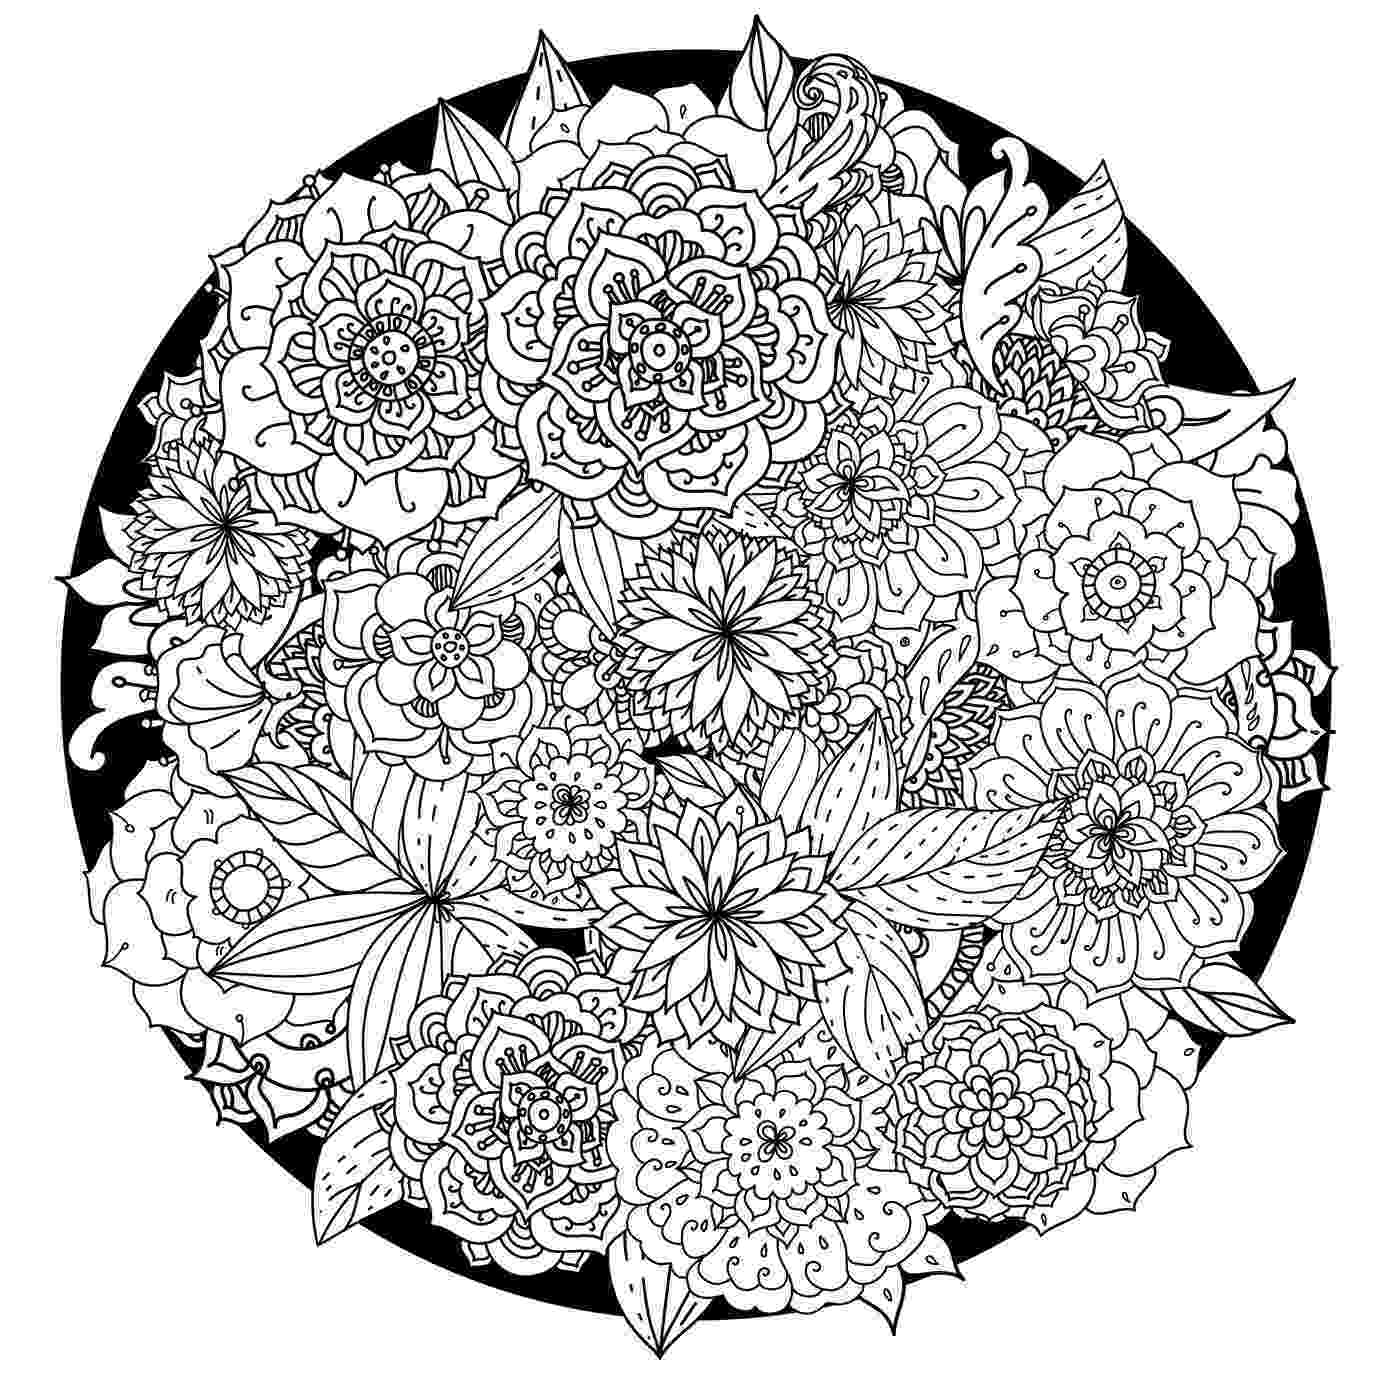 free online mandala coloring pages for adults items similar to mandala adult coloring page 56 on etsy for free coloring adults pages online mandala